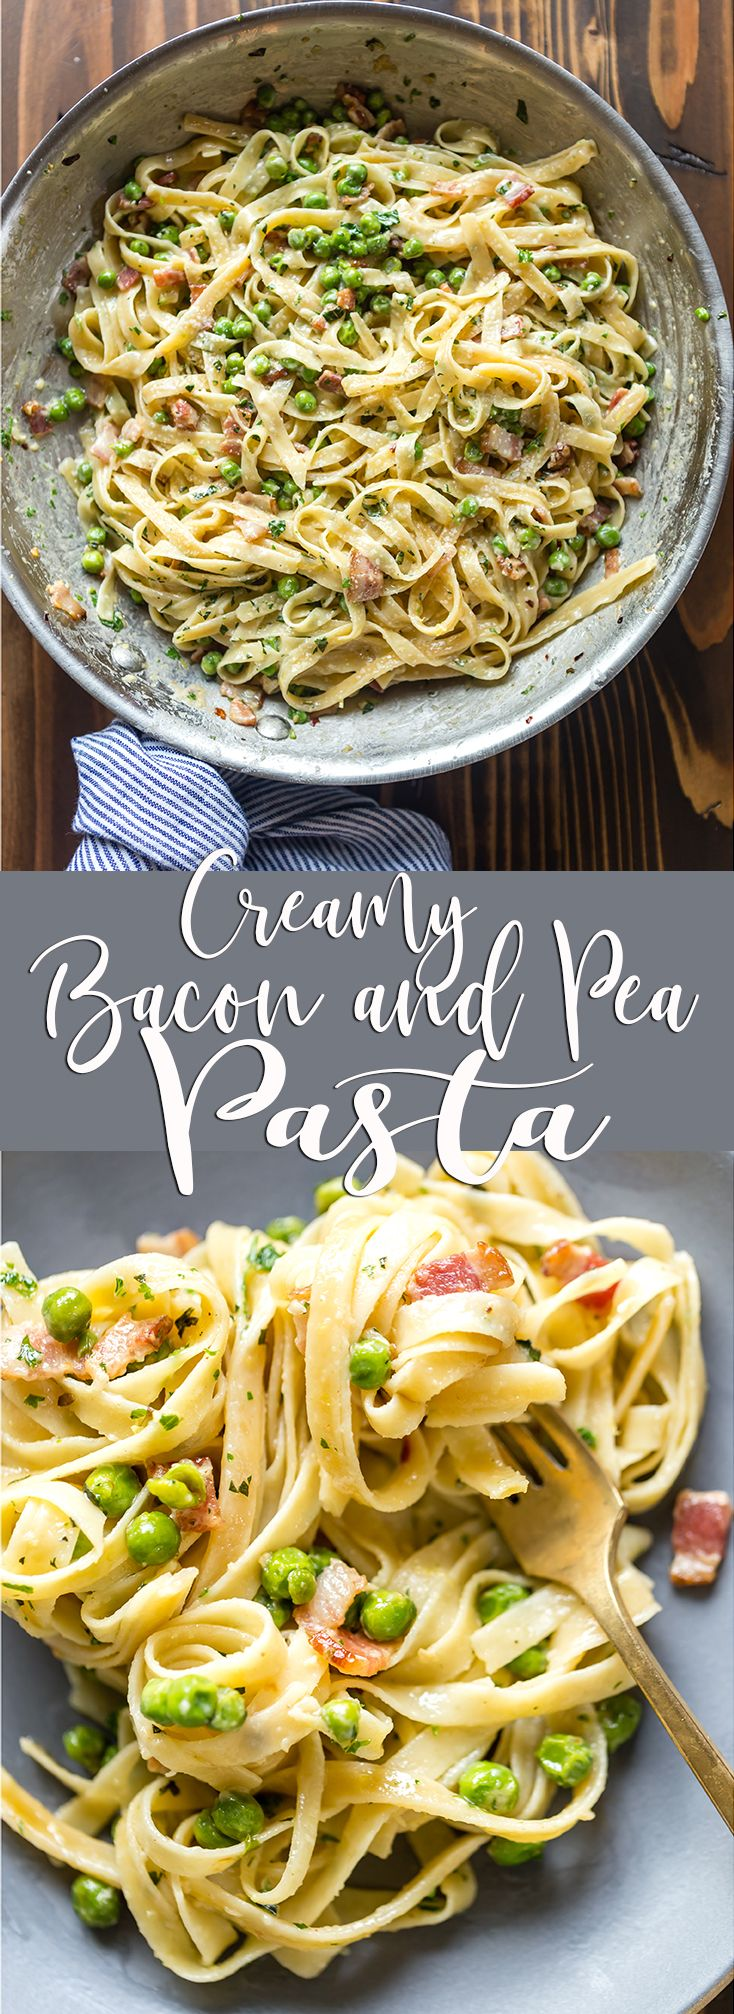 This quick Creamy Pasta with Pancetta and Peas only takes 15 minutes and is an easy and elegant dinner for any night of the week! @QFCgrocery